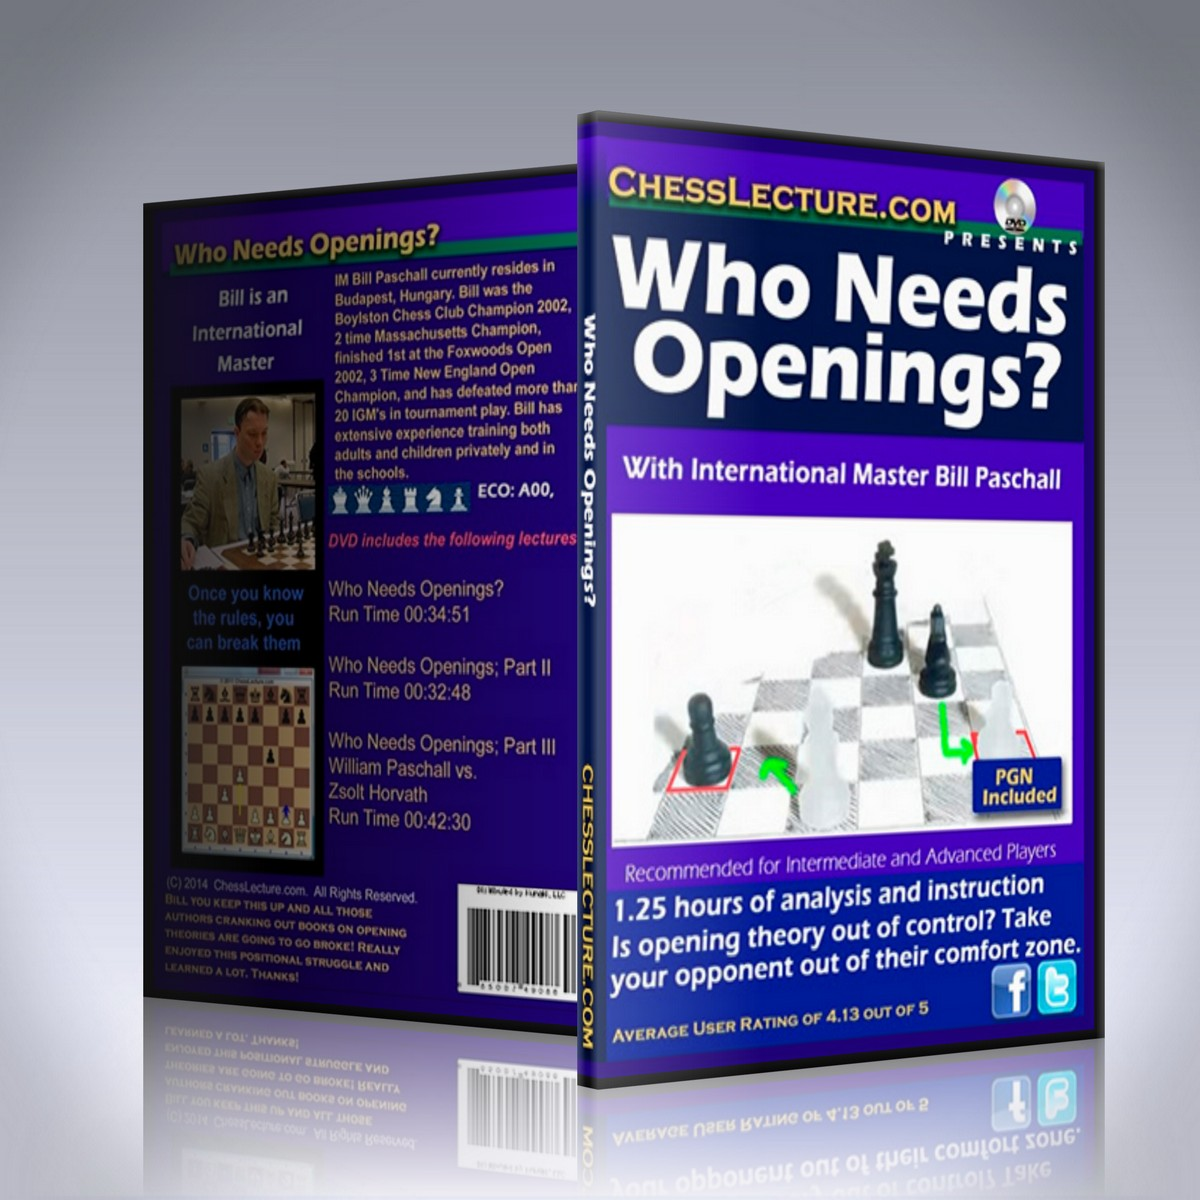 Who Needs Openings? – IM Bill Paschall